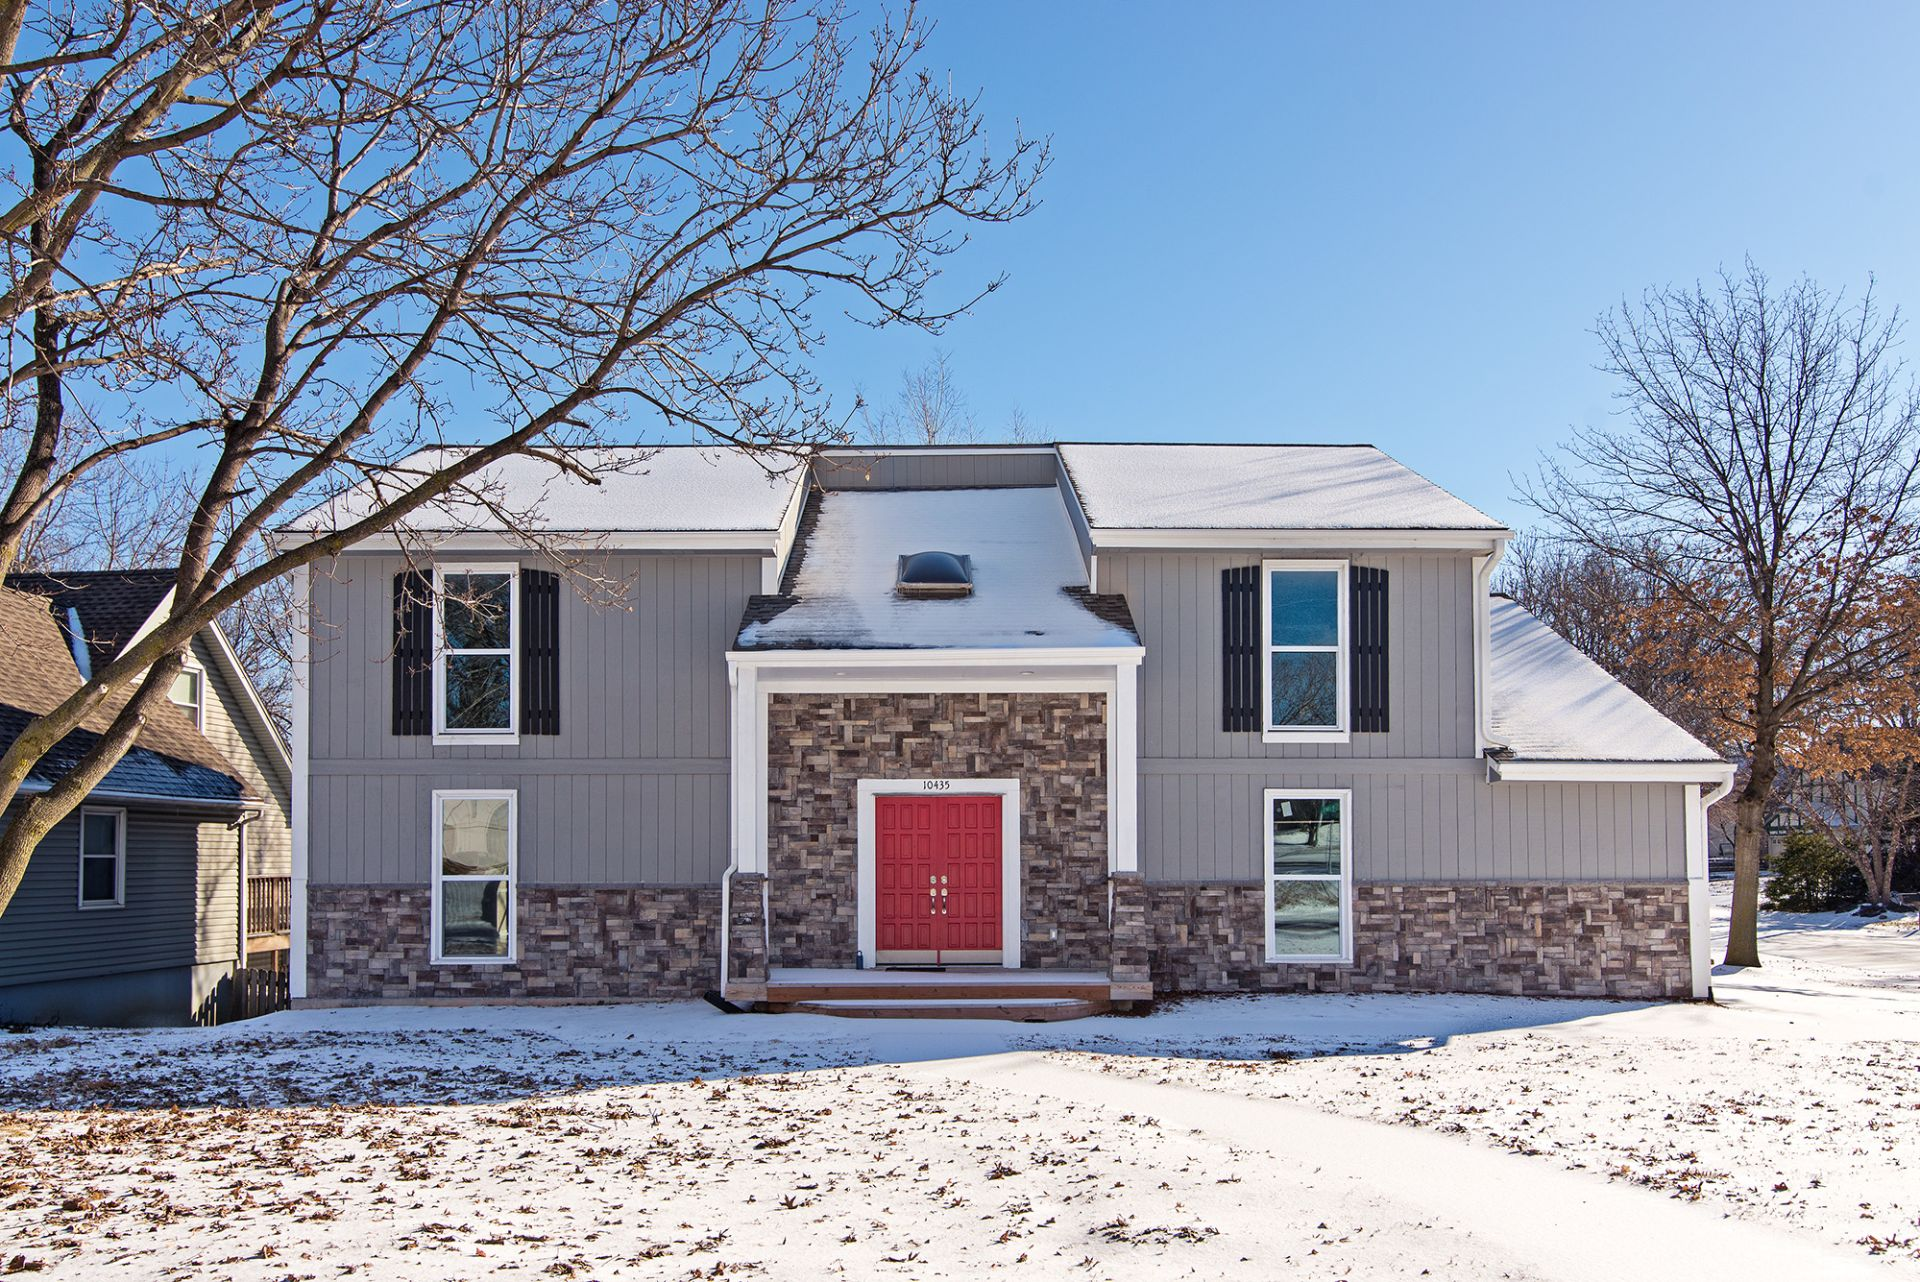 NEW PRICE! Looking for a Complete Remodel? Look no further, THIS IS THE ONE!